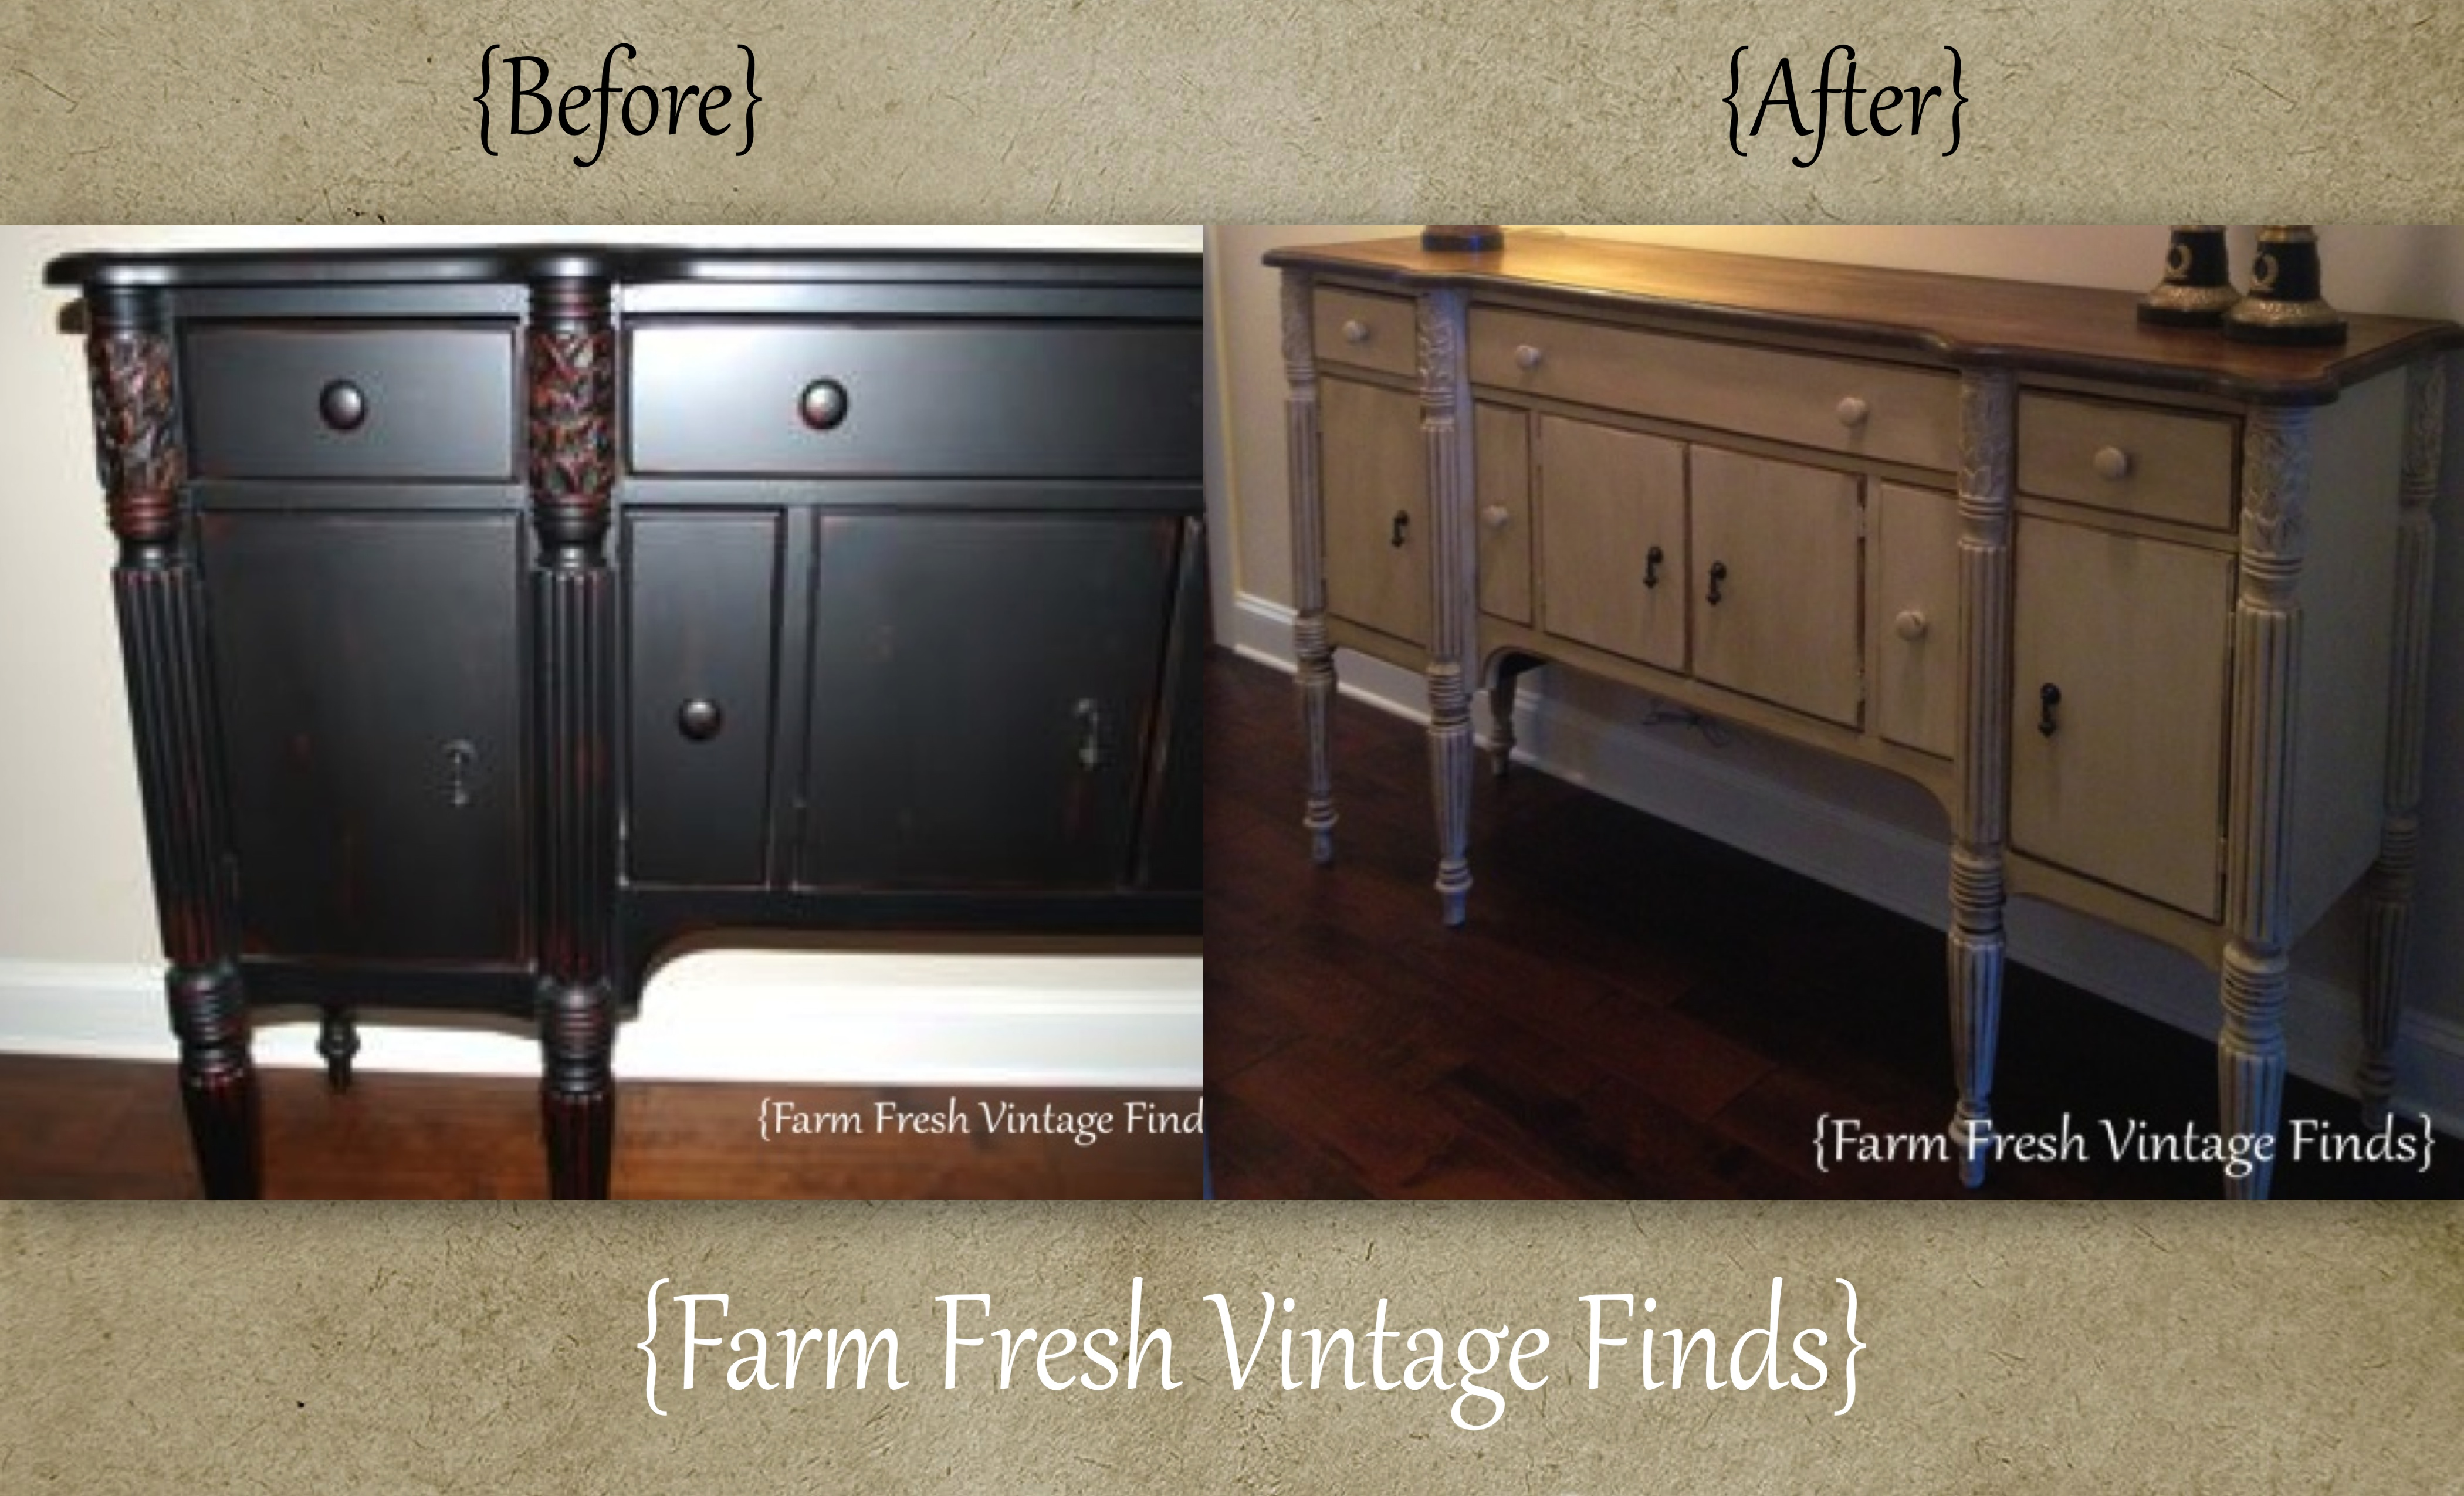 100 annie sloan kitchen cabinets before and after kitchen room fabulous painting - Annie sloan kitchen cabinets before and after ...